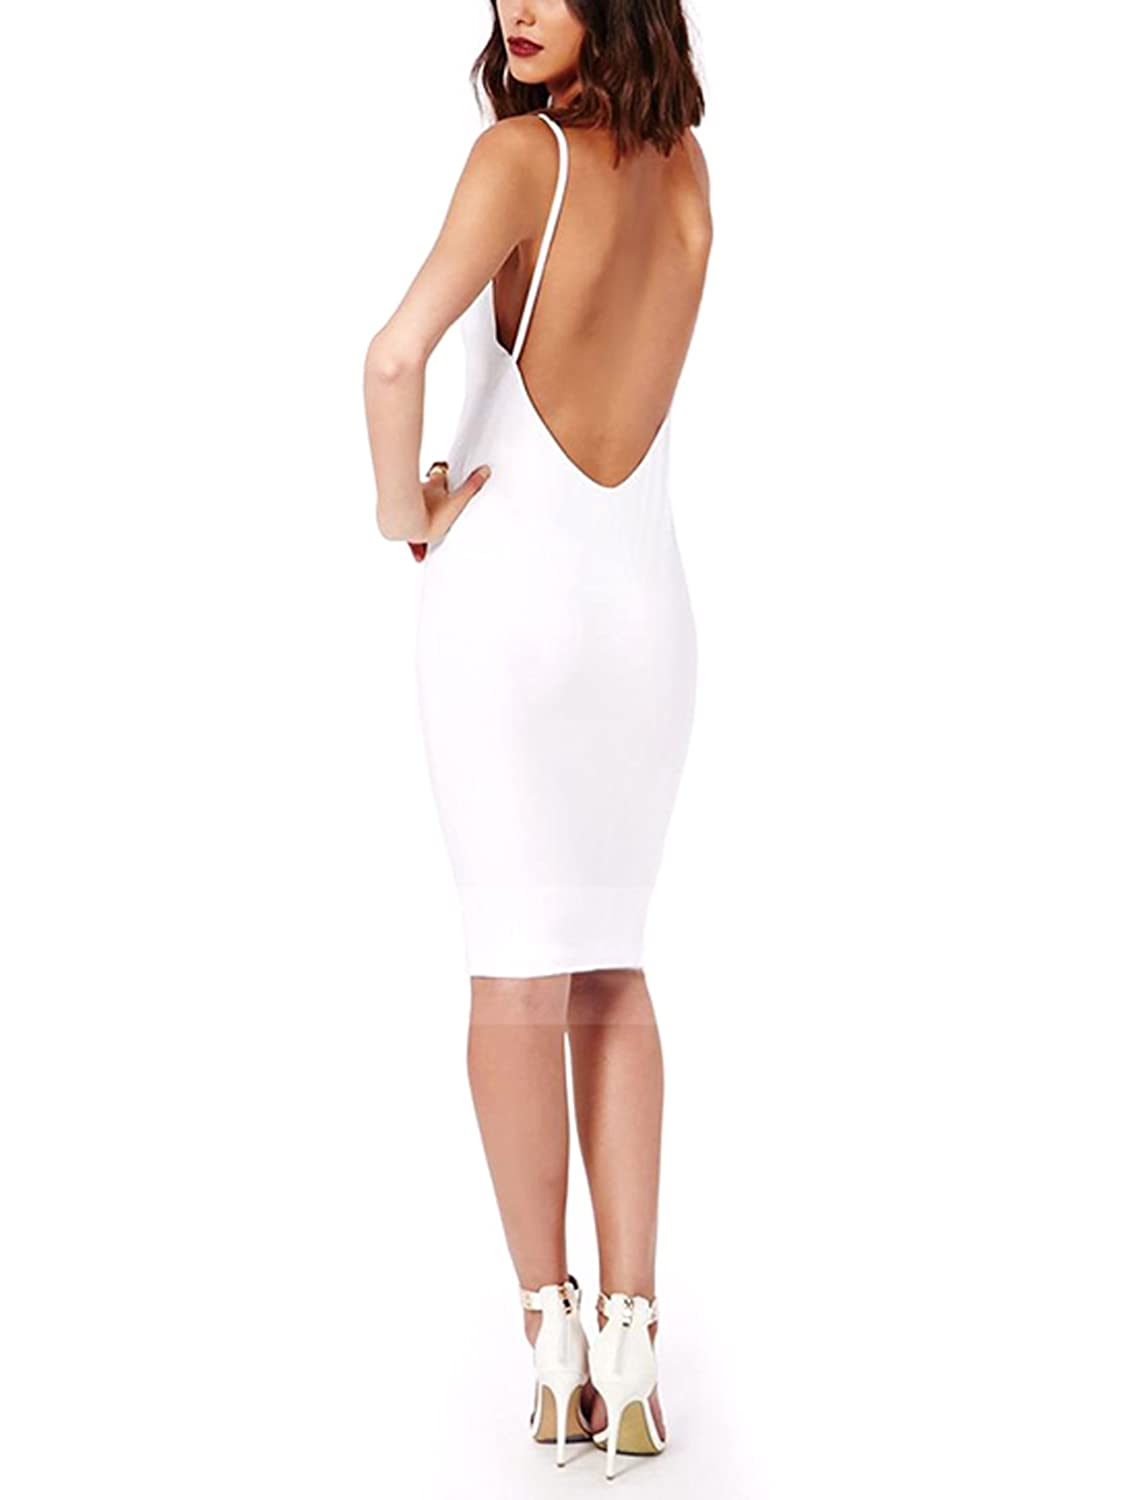 Moxeay Women Sexy Backless Back Halter Strap Bodycon Dress (L, White)